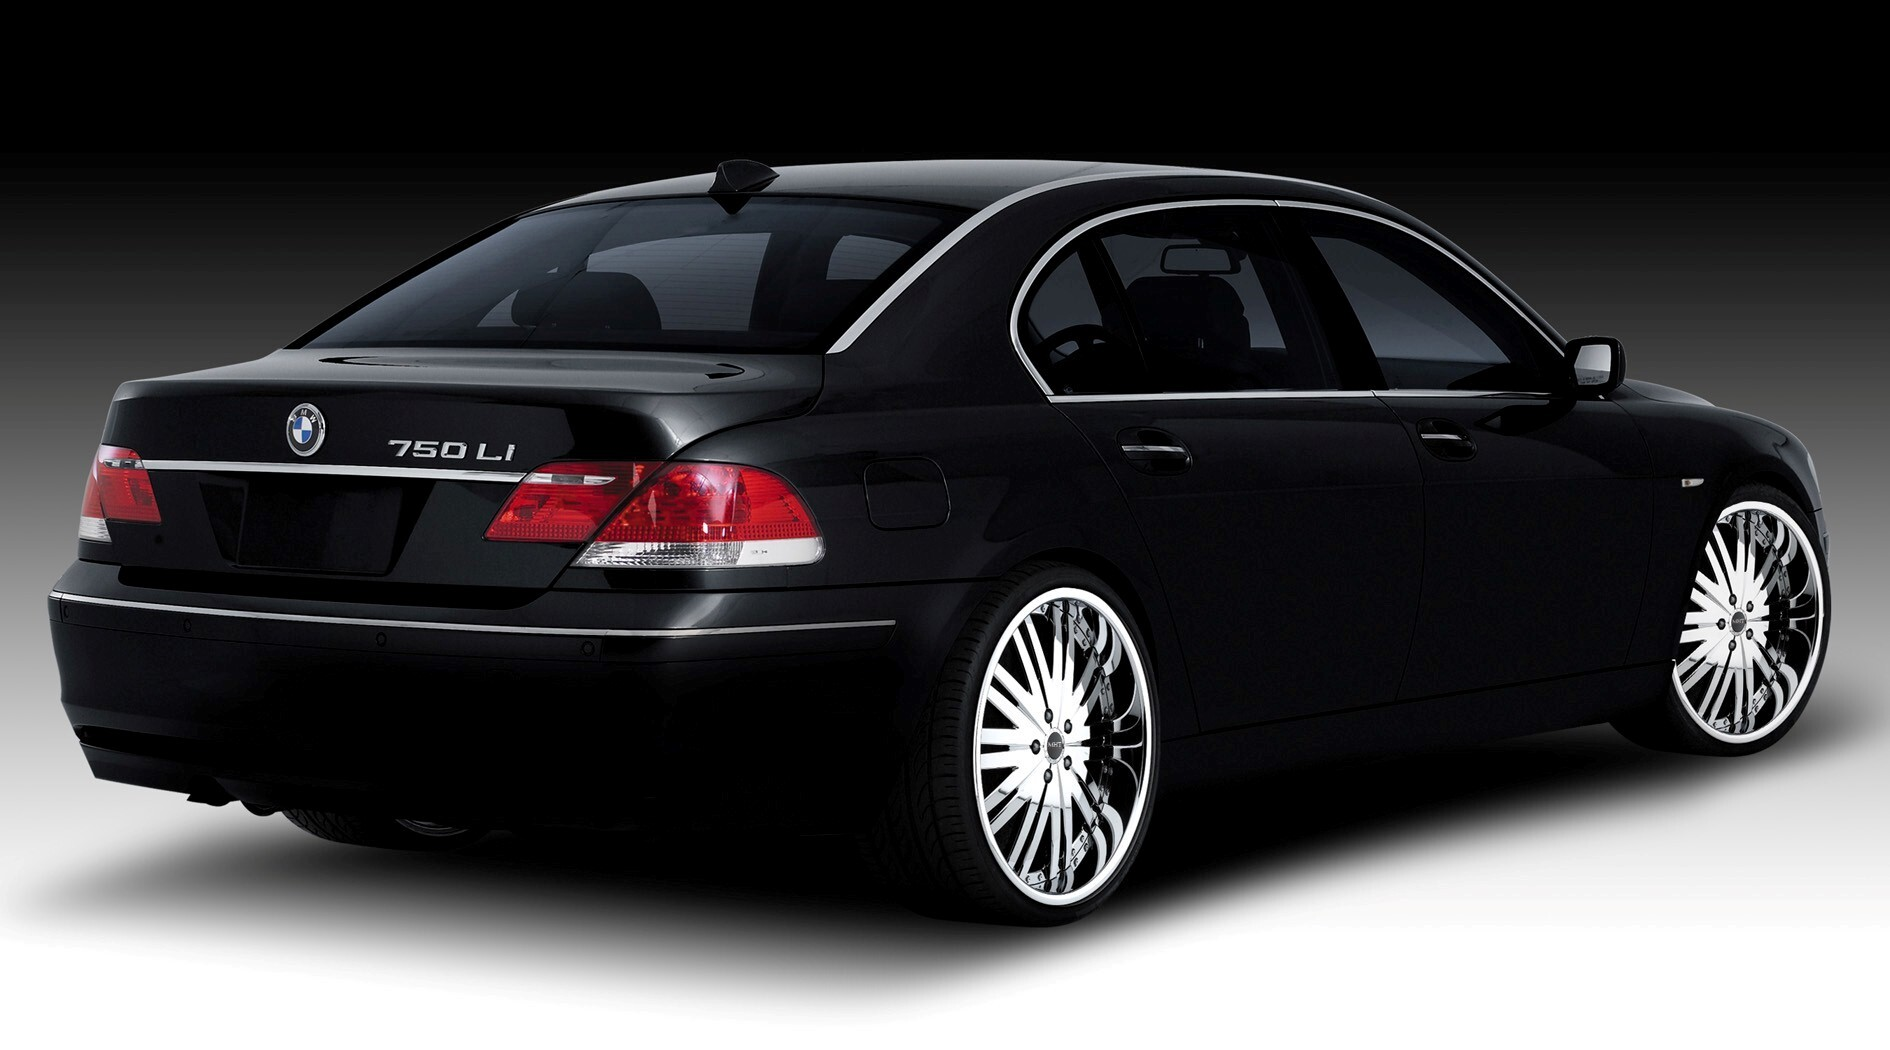 Black Cars Wallpaper 7 Background: Black BMW 7 Series Car Wallpapers